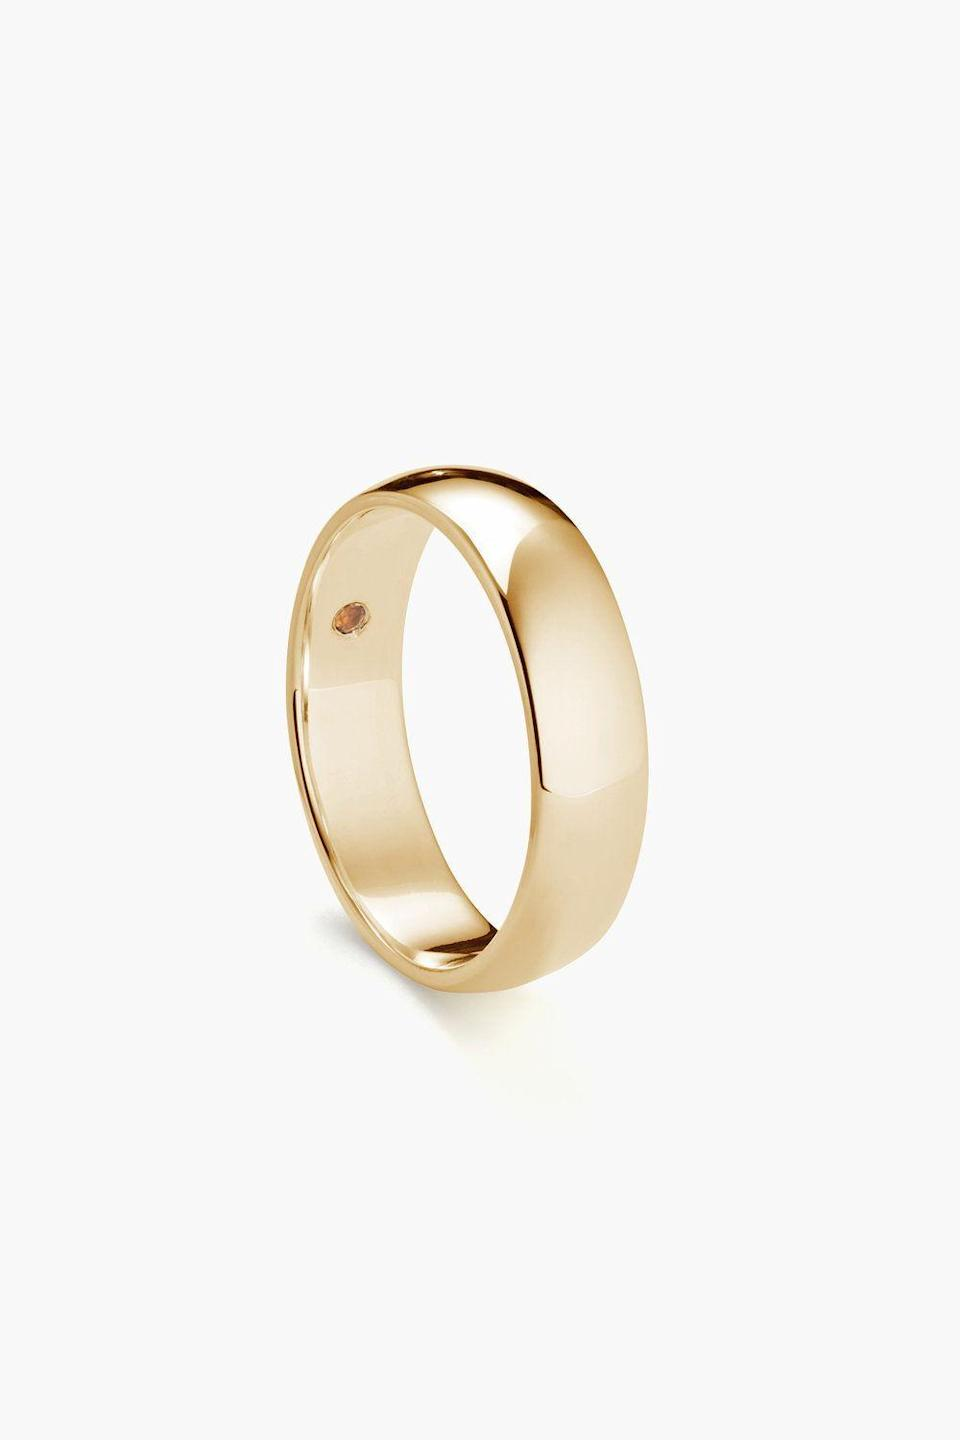 "<p><strong>Yellow Gold Ring</strong></p><p>misterok.com</p><p><strong>$850.00</strong></p><p><a href=""https://www.misterok.com/shop/round-6mm-yellow-gold-wedding-ring"" rel=""nofollow noopener"" target=""_blank"" data-ylk=""slk:Shop Now"" class=""link rapid-noclick-resp"">Shop Now</a></p><p>Jewelry has always been the stylish man's way of differentiating himself from others. A simple gold band (worn on his pinky or middle finger) with a secret birthstone hidden on the inside is a perfect heirloom edition to his collection.</p>"